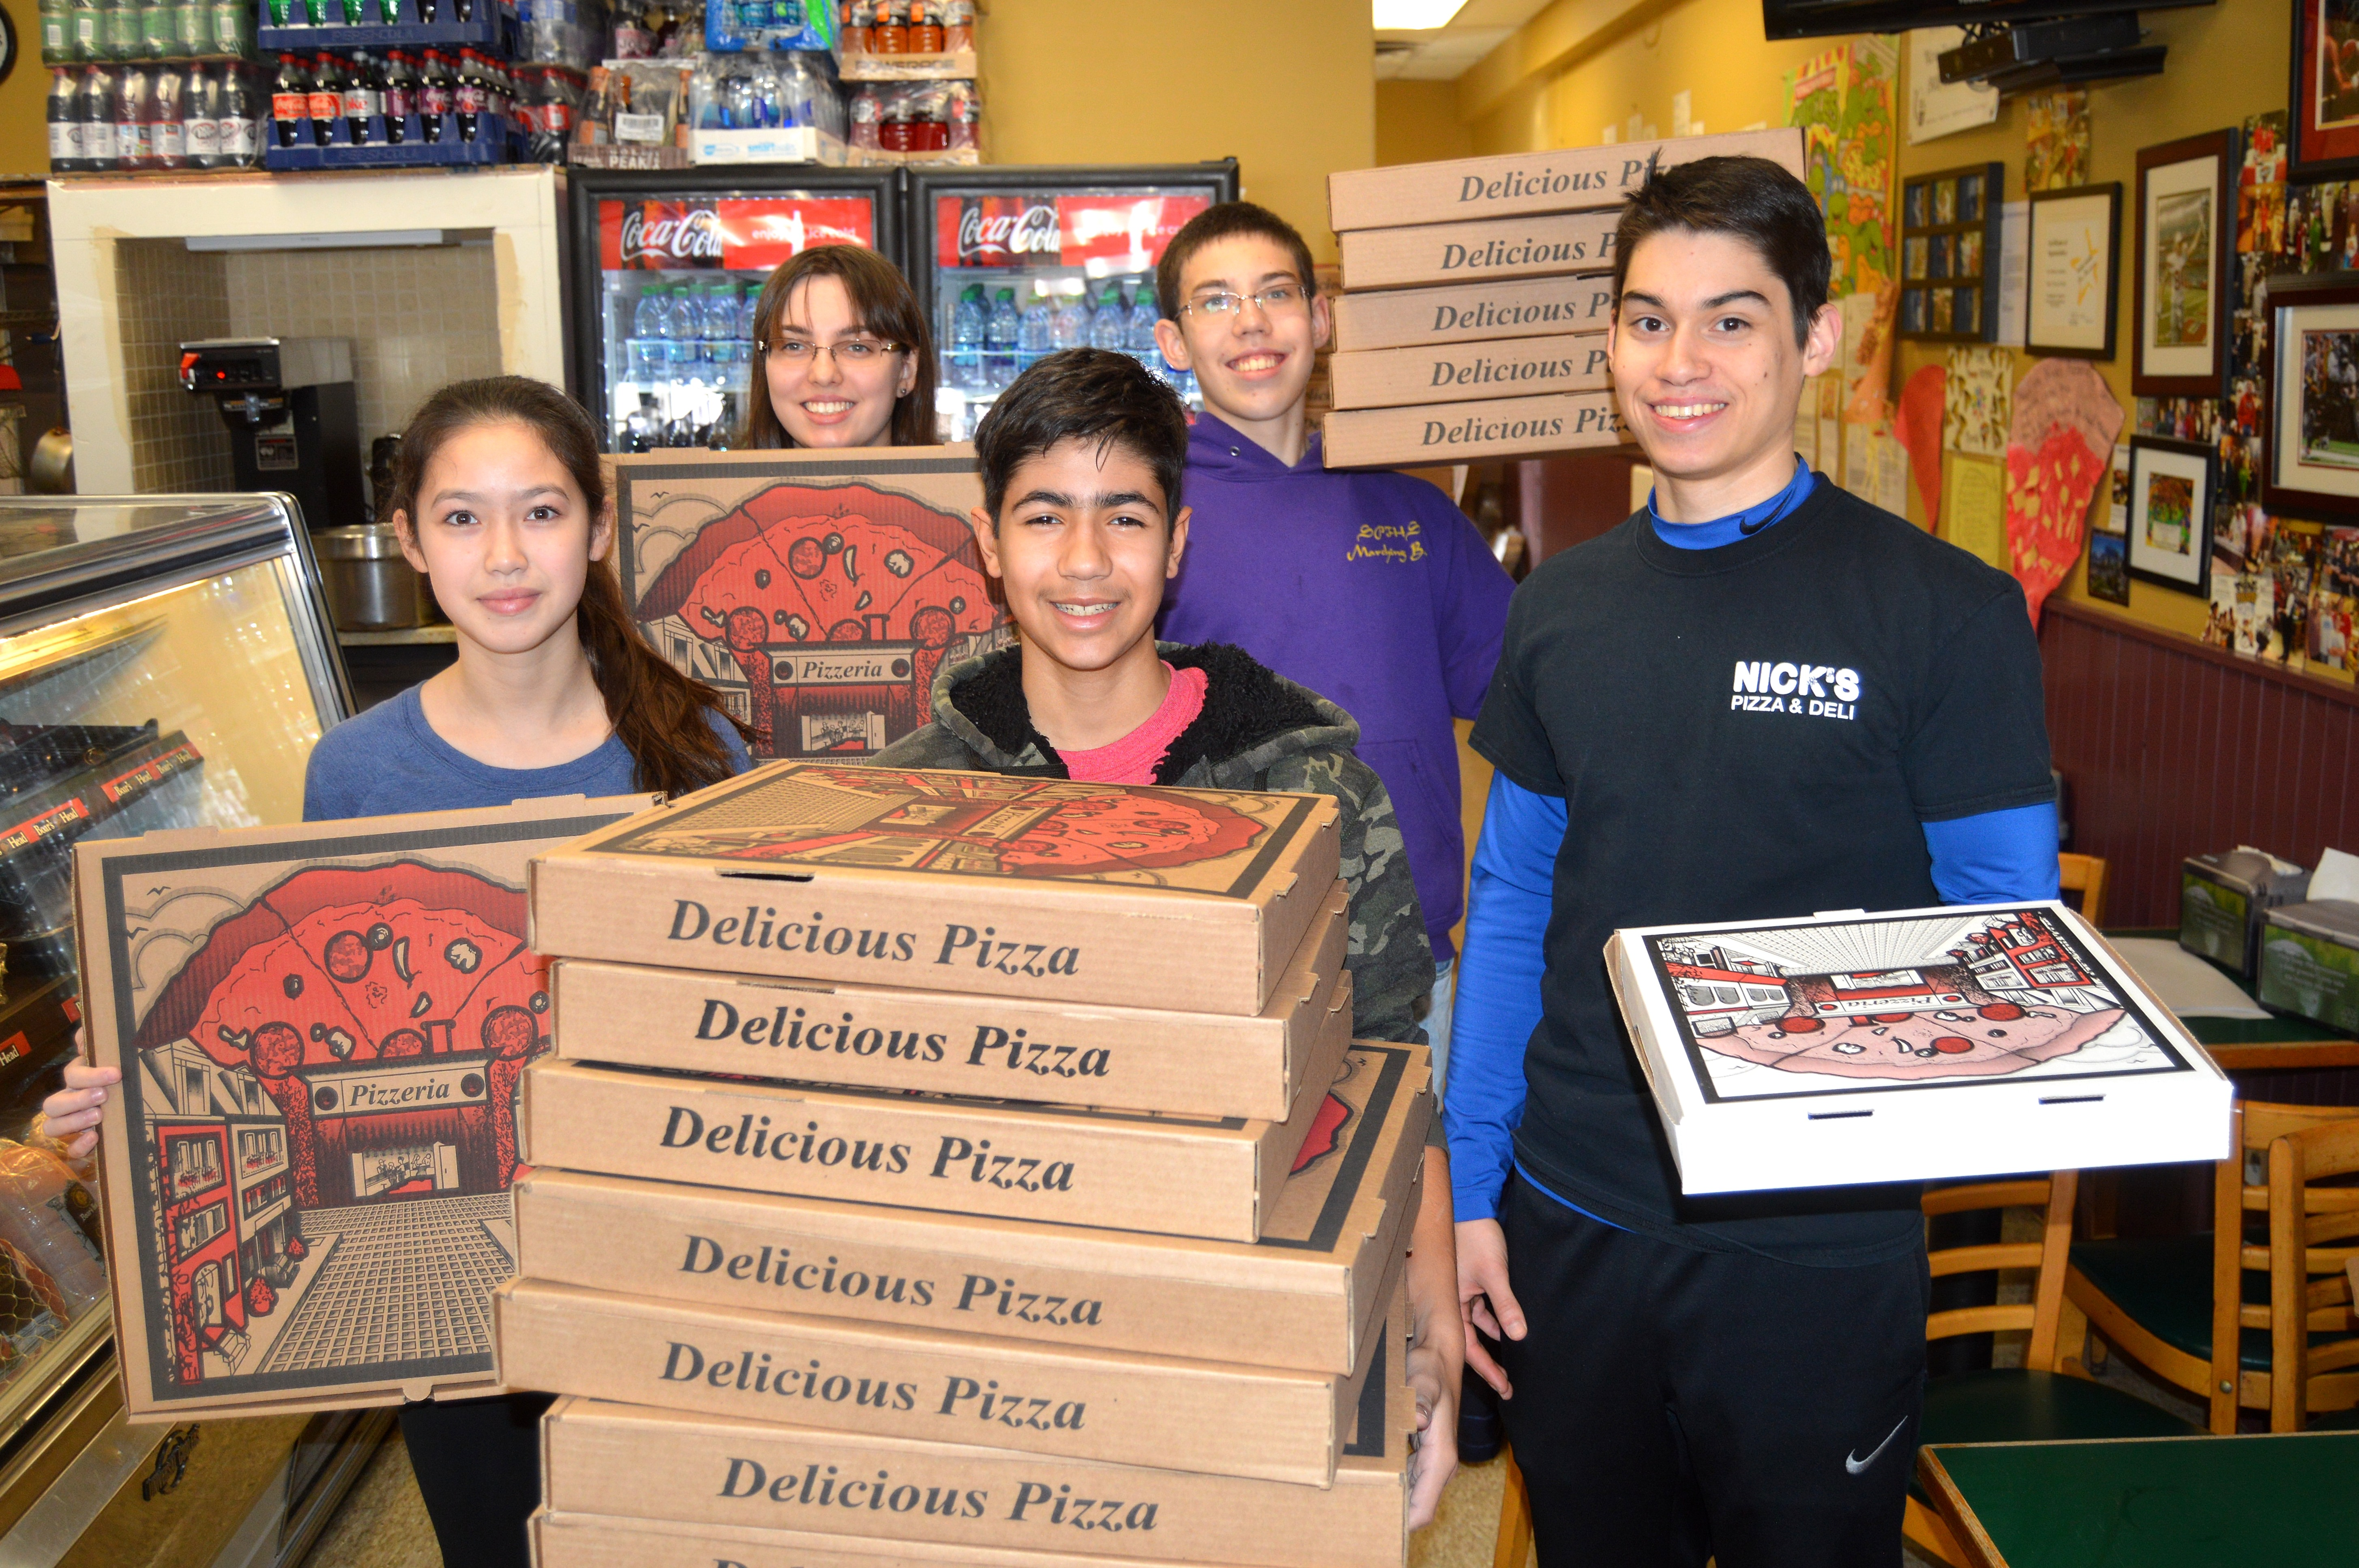 2b9f49efa68e8b2ef06d_Nick_s_Pizza_volunteers_-_2016.JPG